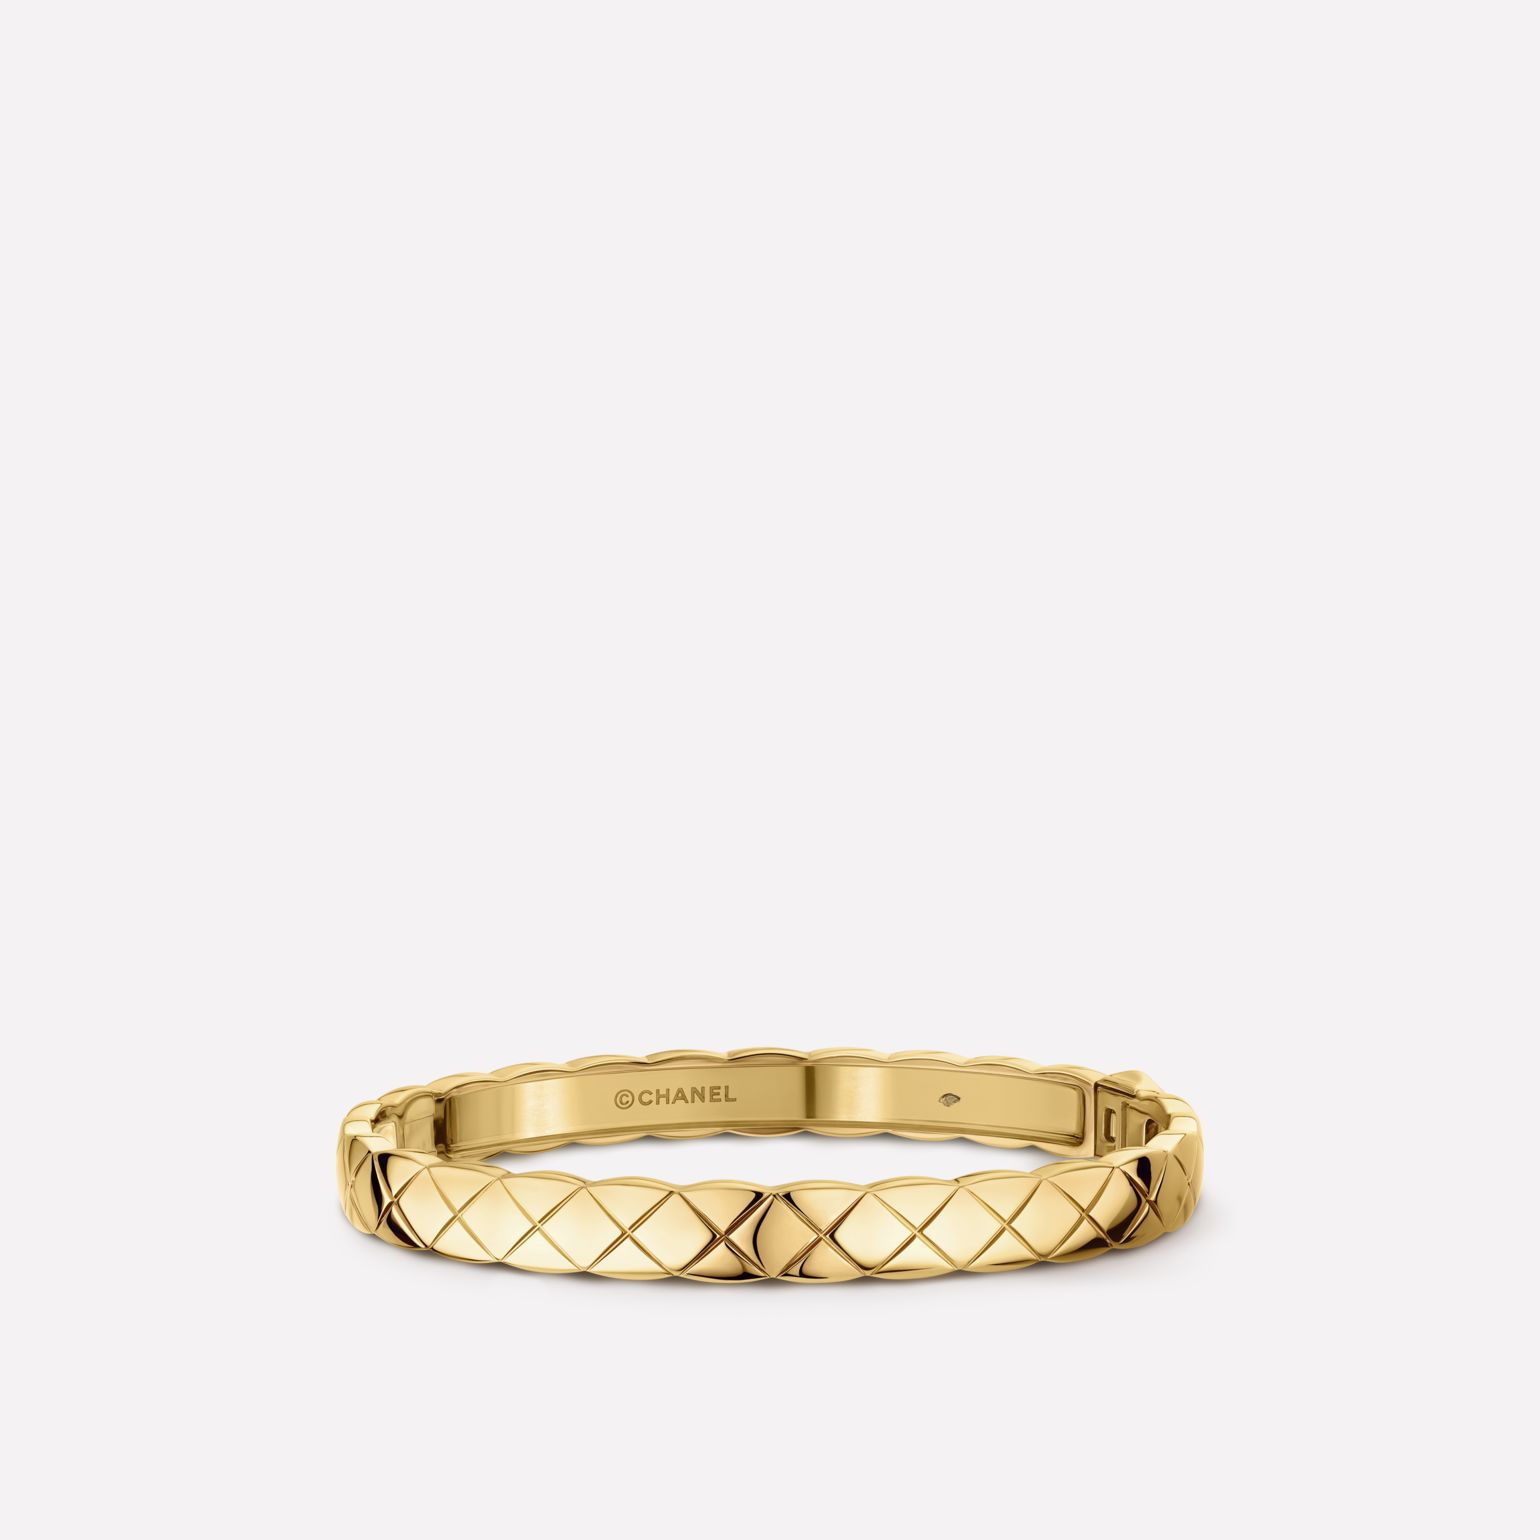 Coco Crush Bracelet Coco Crush bangle in 18K yellow gold